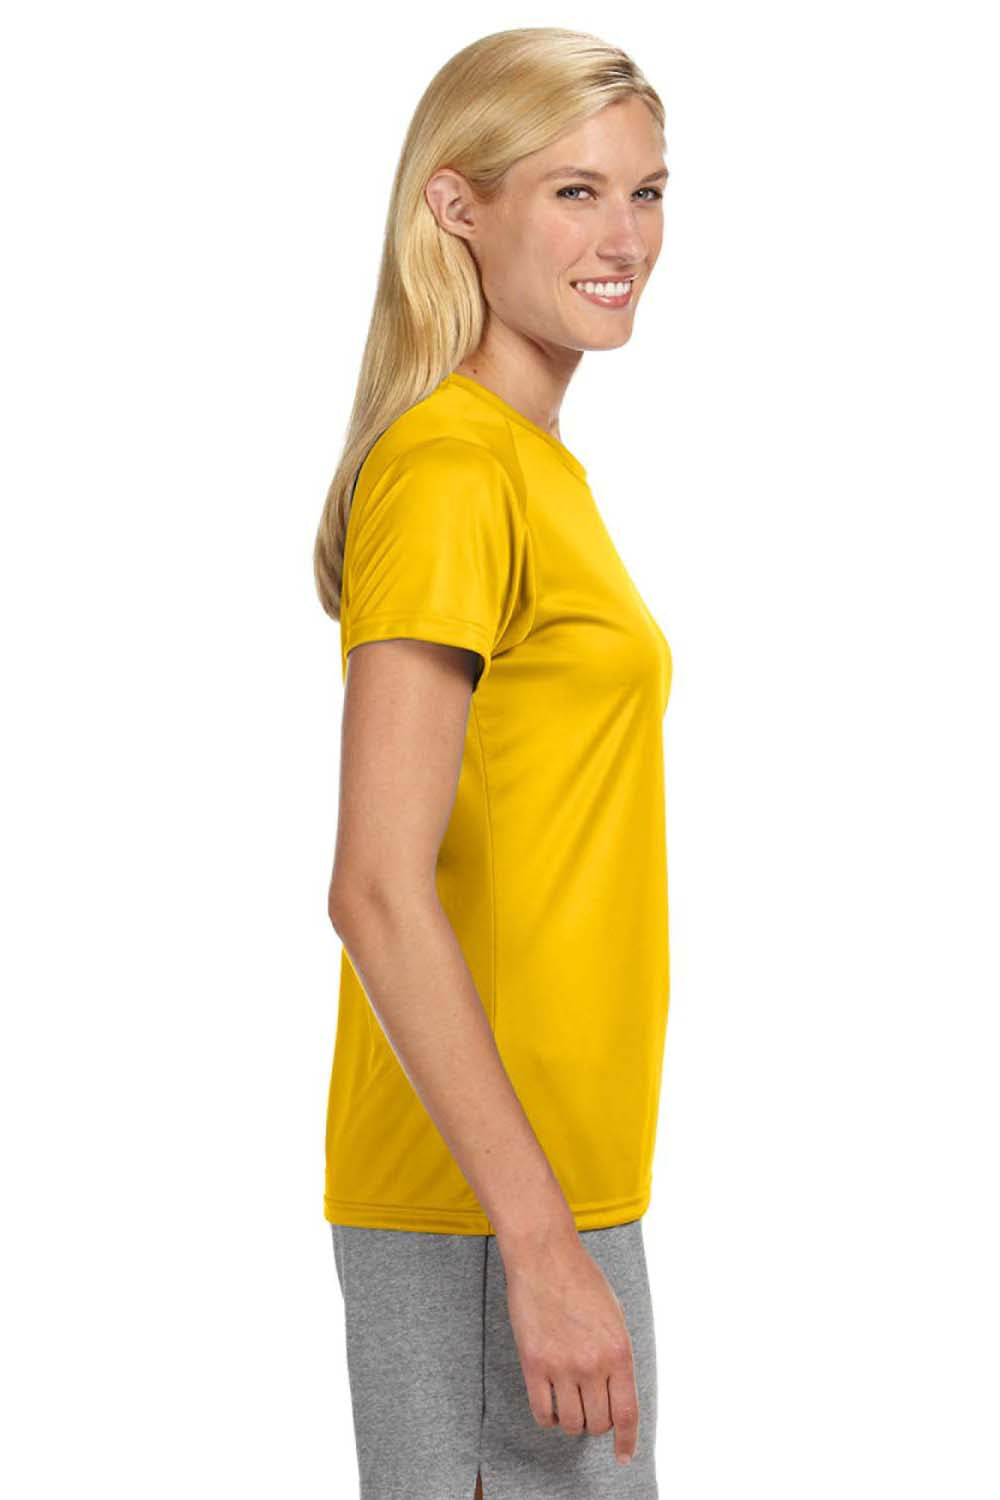 A4 NW3201 Womens Cooling Performance Moisture Wicking Short Sleeve Crewneck T-Shirt Gold Side